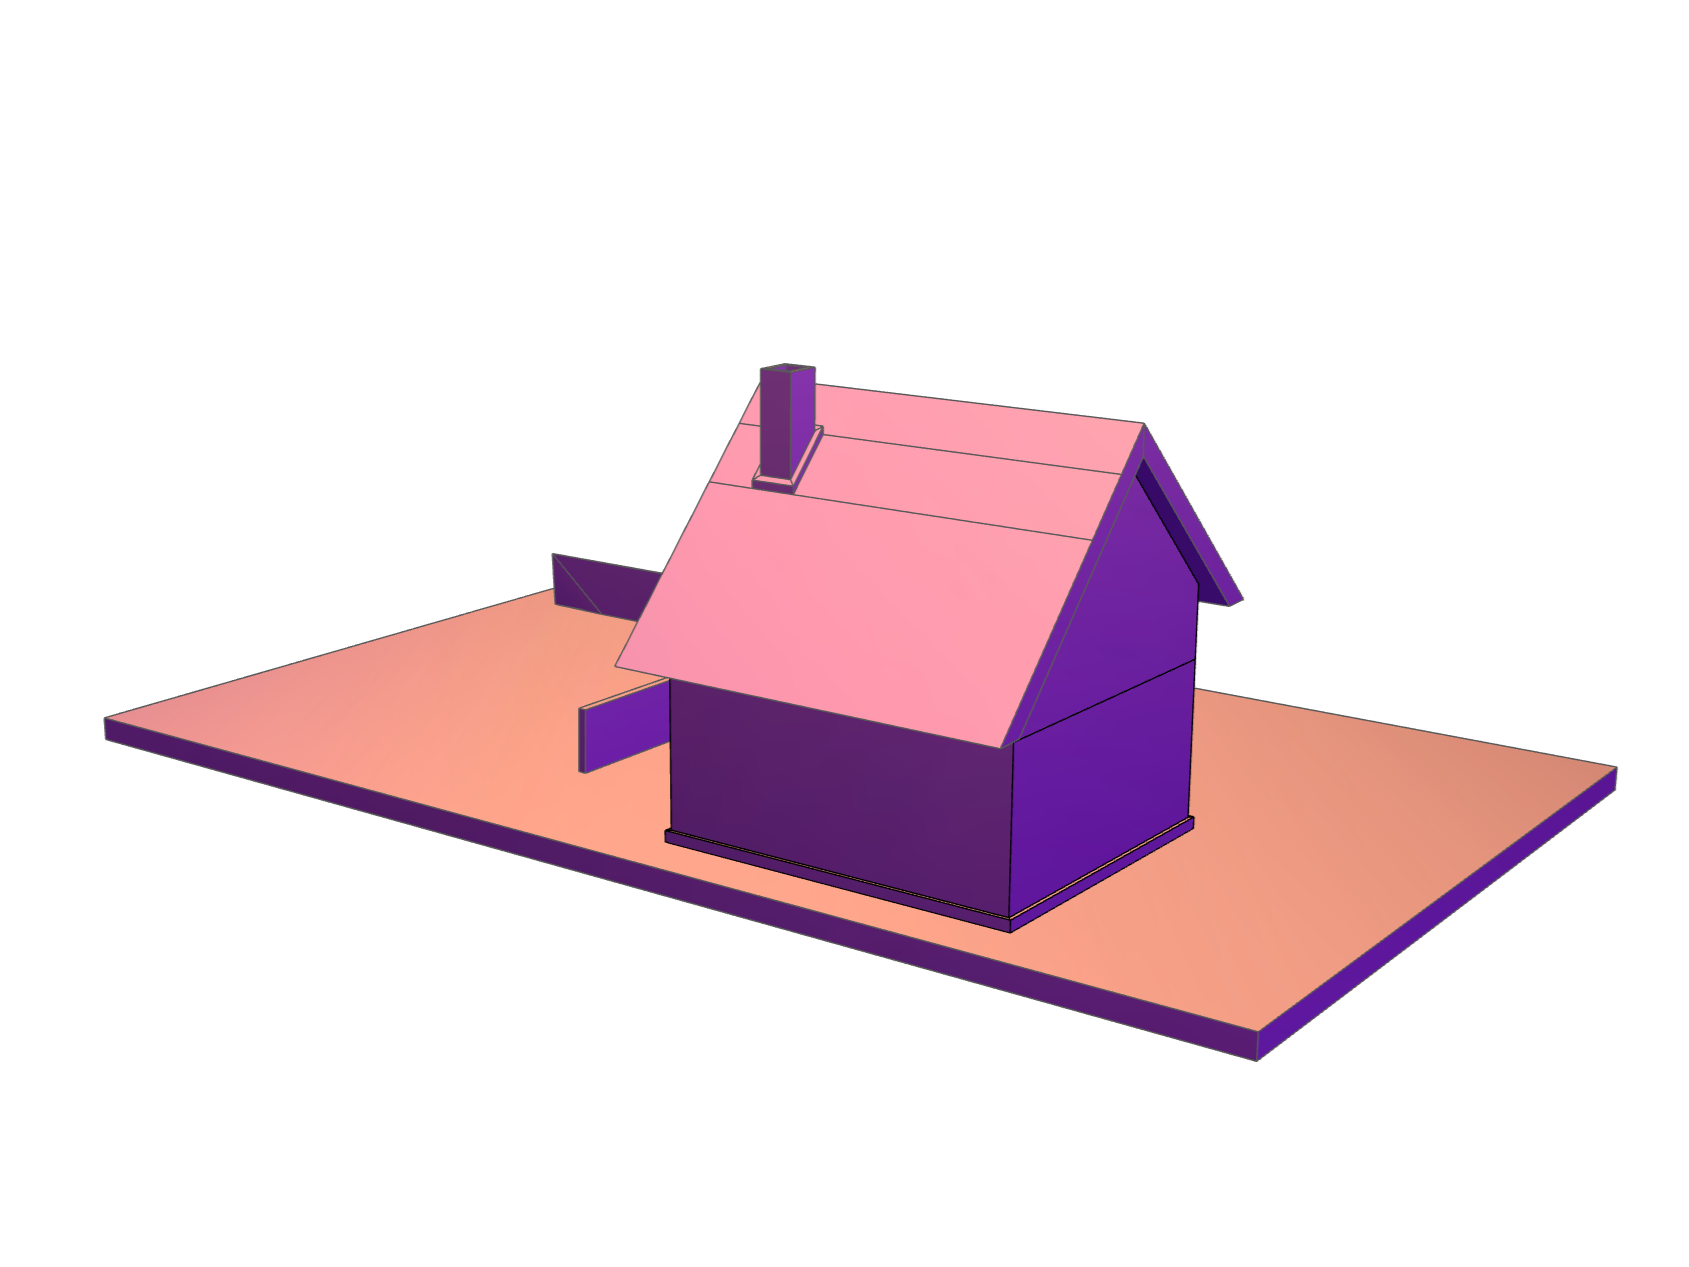 farm-owen - 3D design by drafts Oct 26, 2017